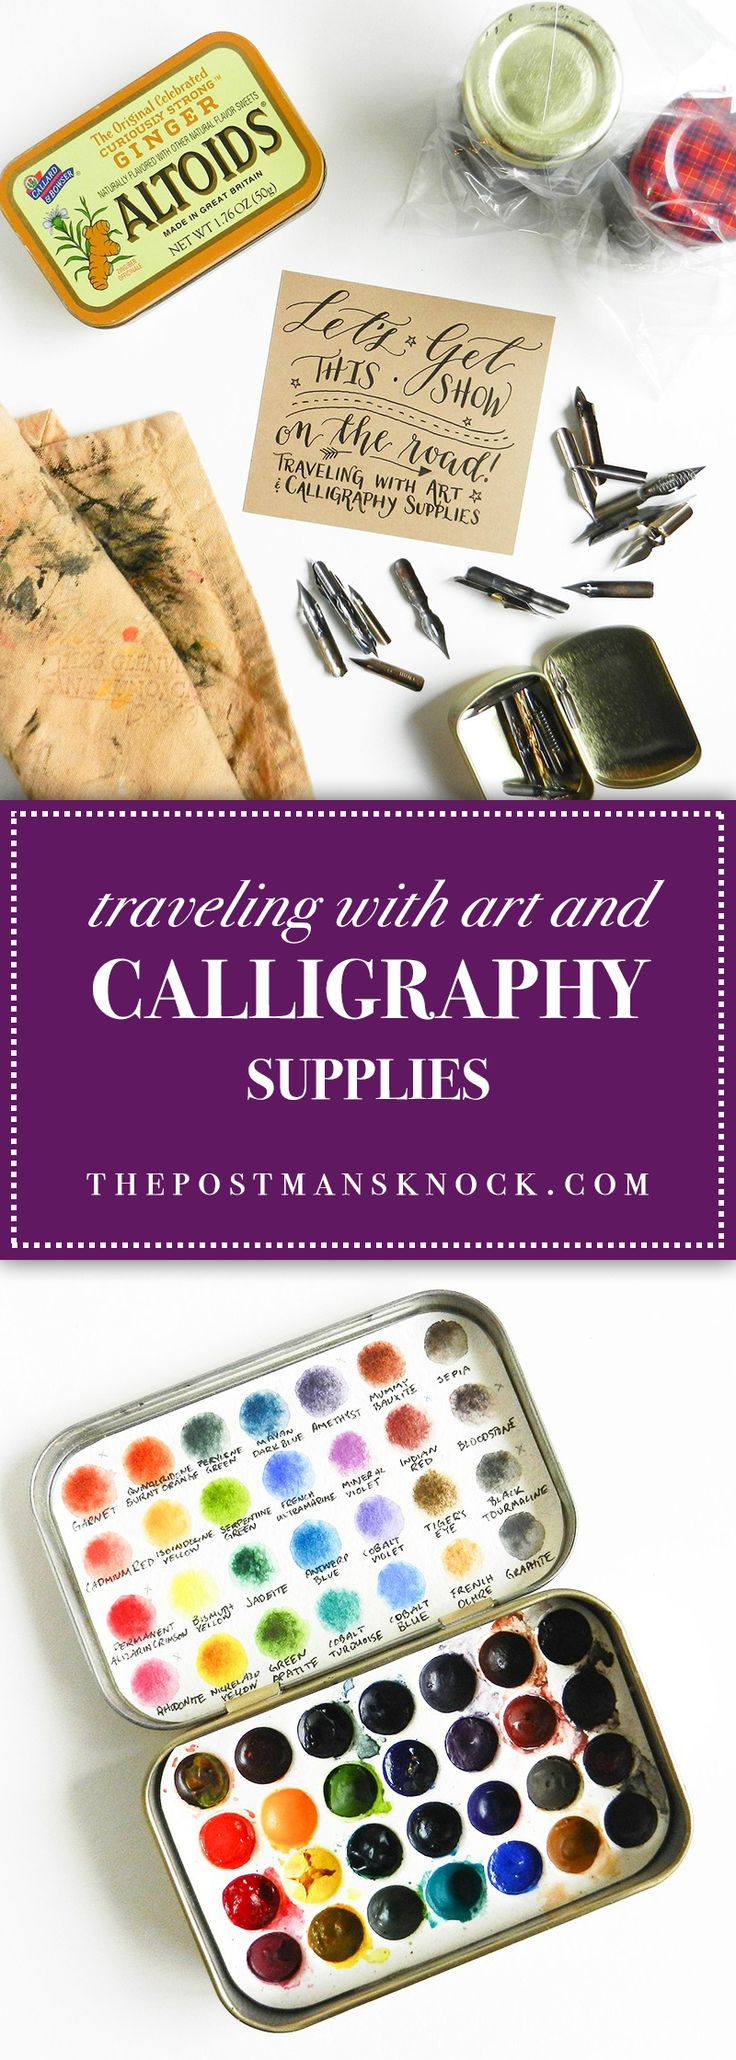 Traveling with art and calligraphy supplies isn't as much of a challenge as it may seem to be! Follow these tips, and you'll {literally} be good to go!